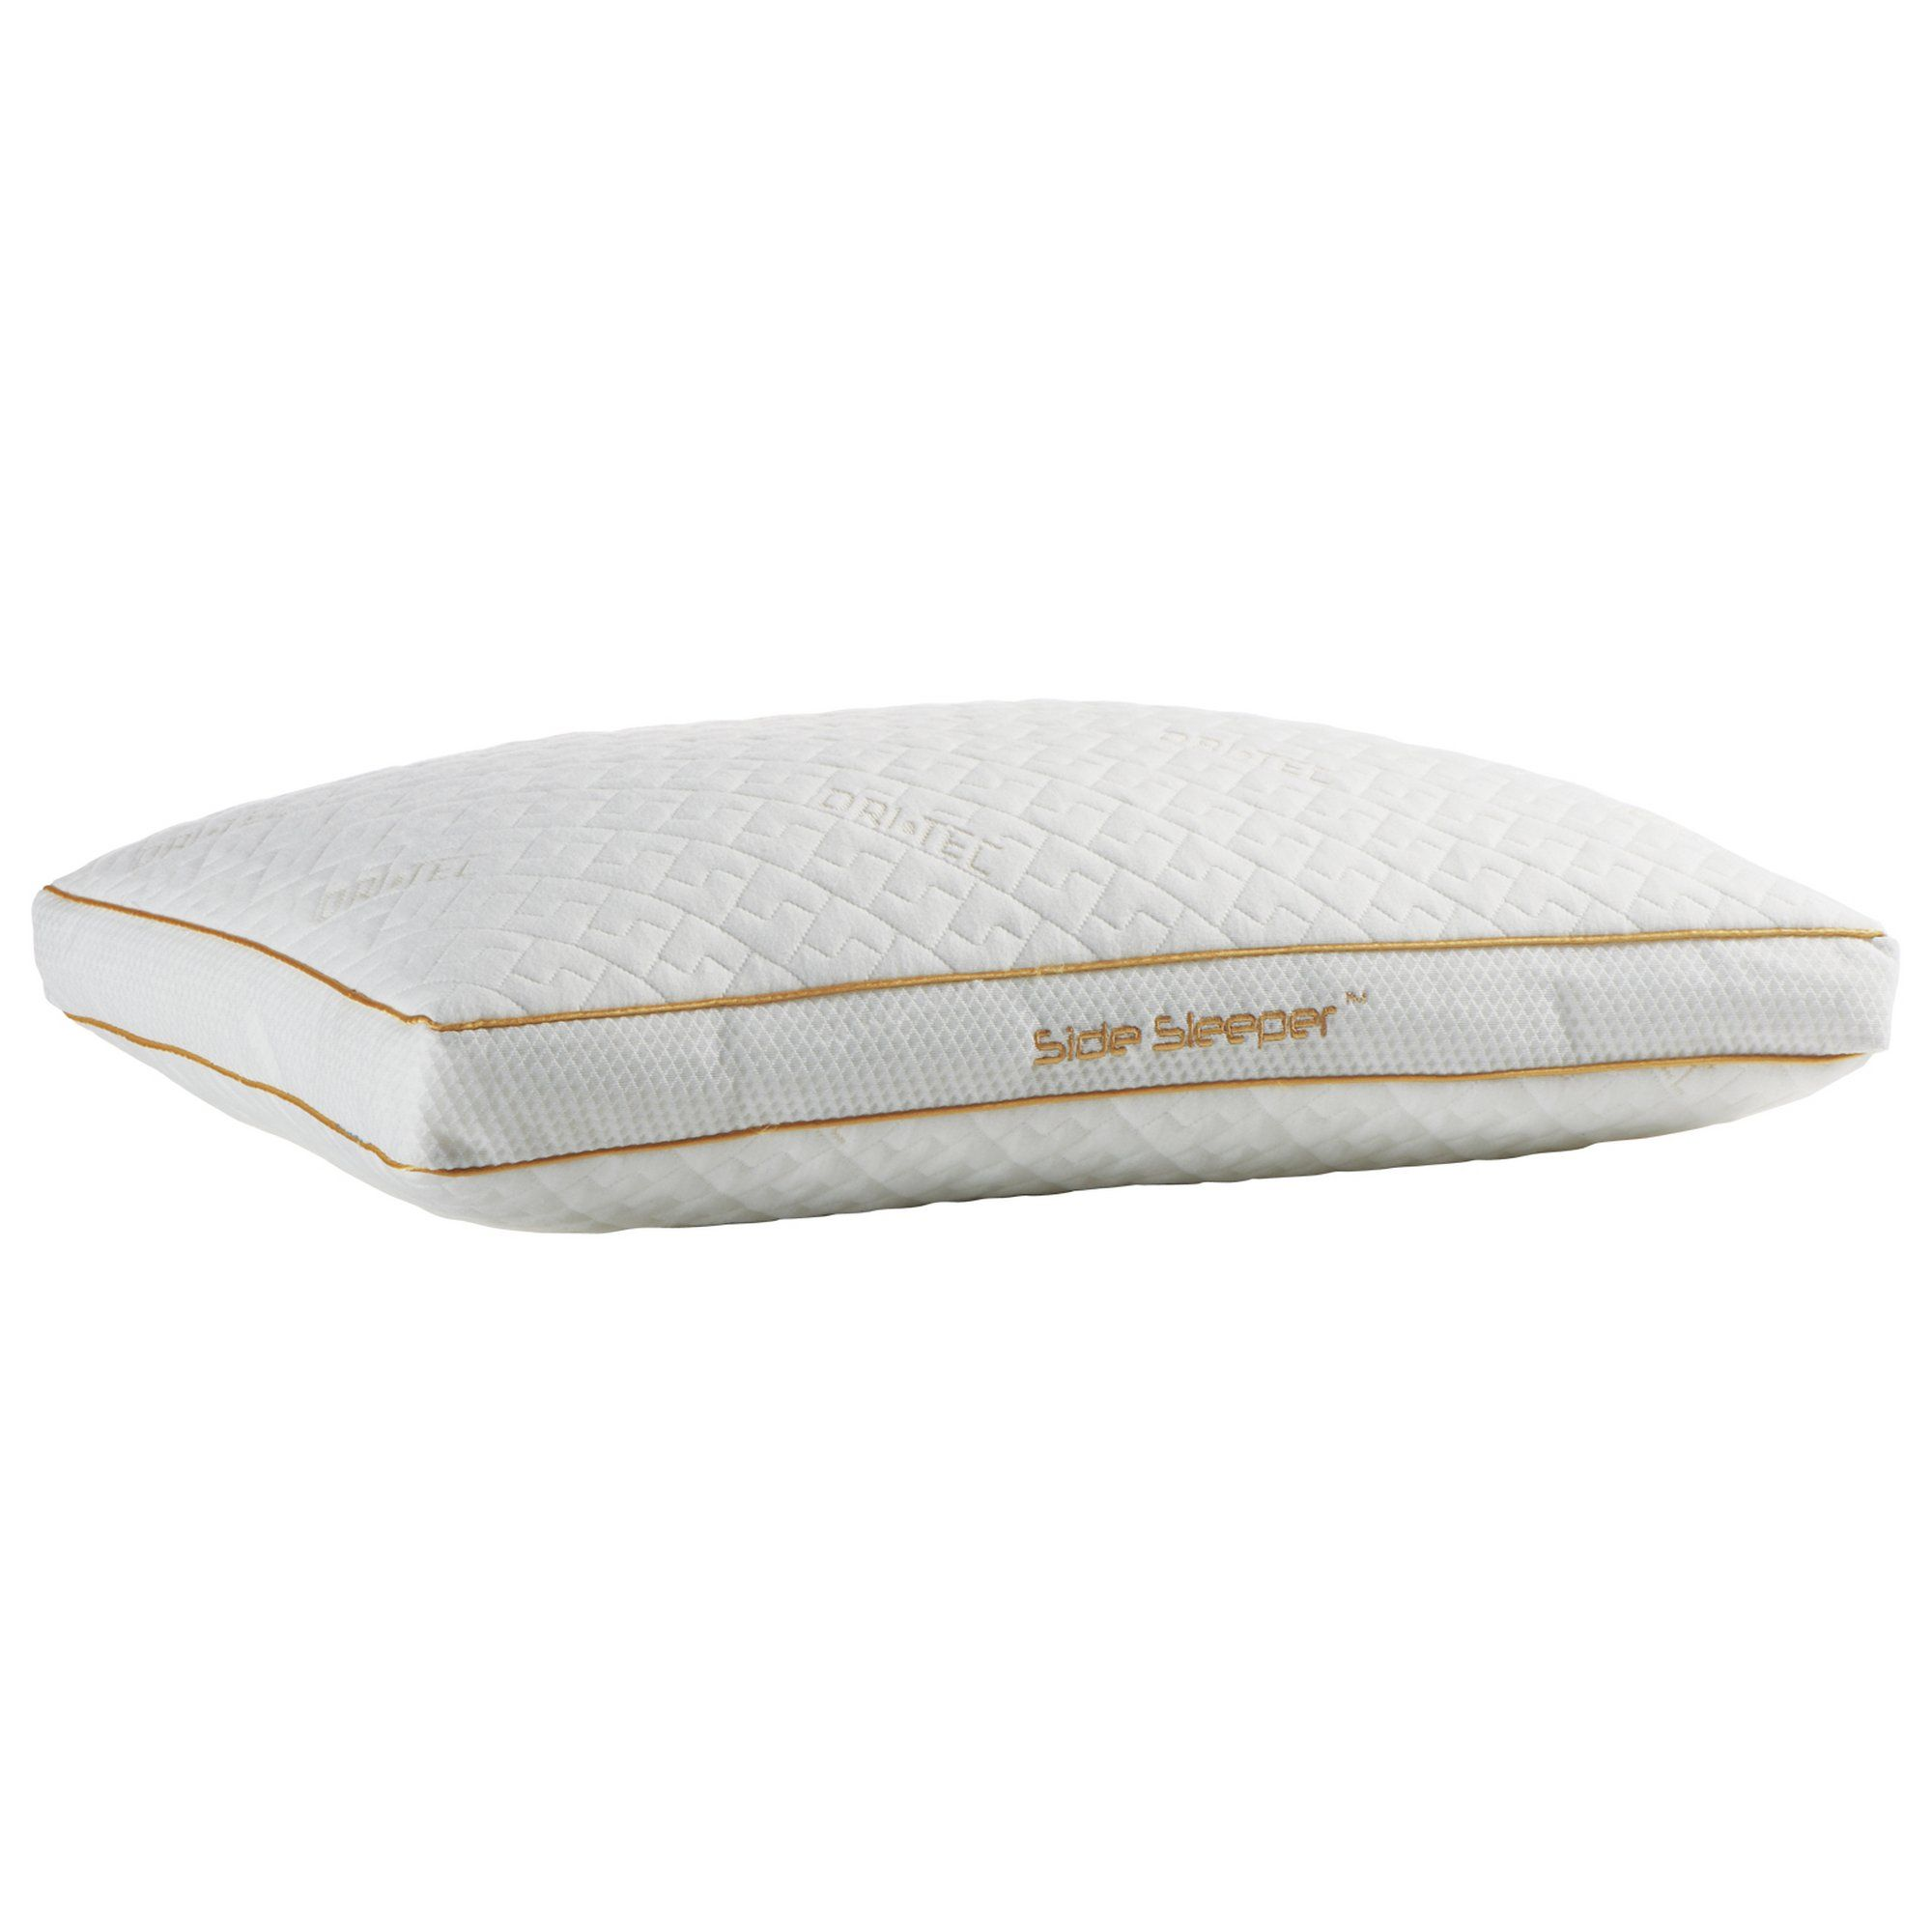 series bedgear latex free today overstock product pillow performance nature bath bedding shipping